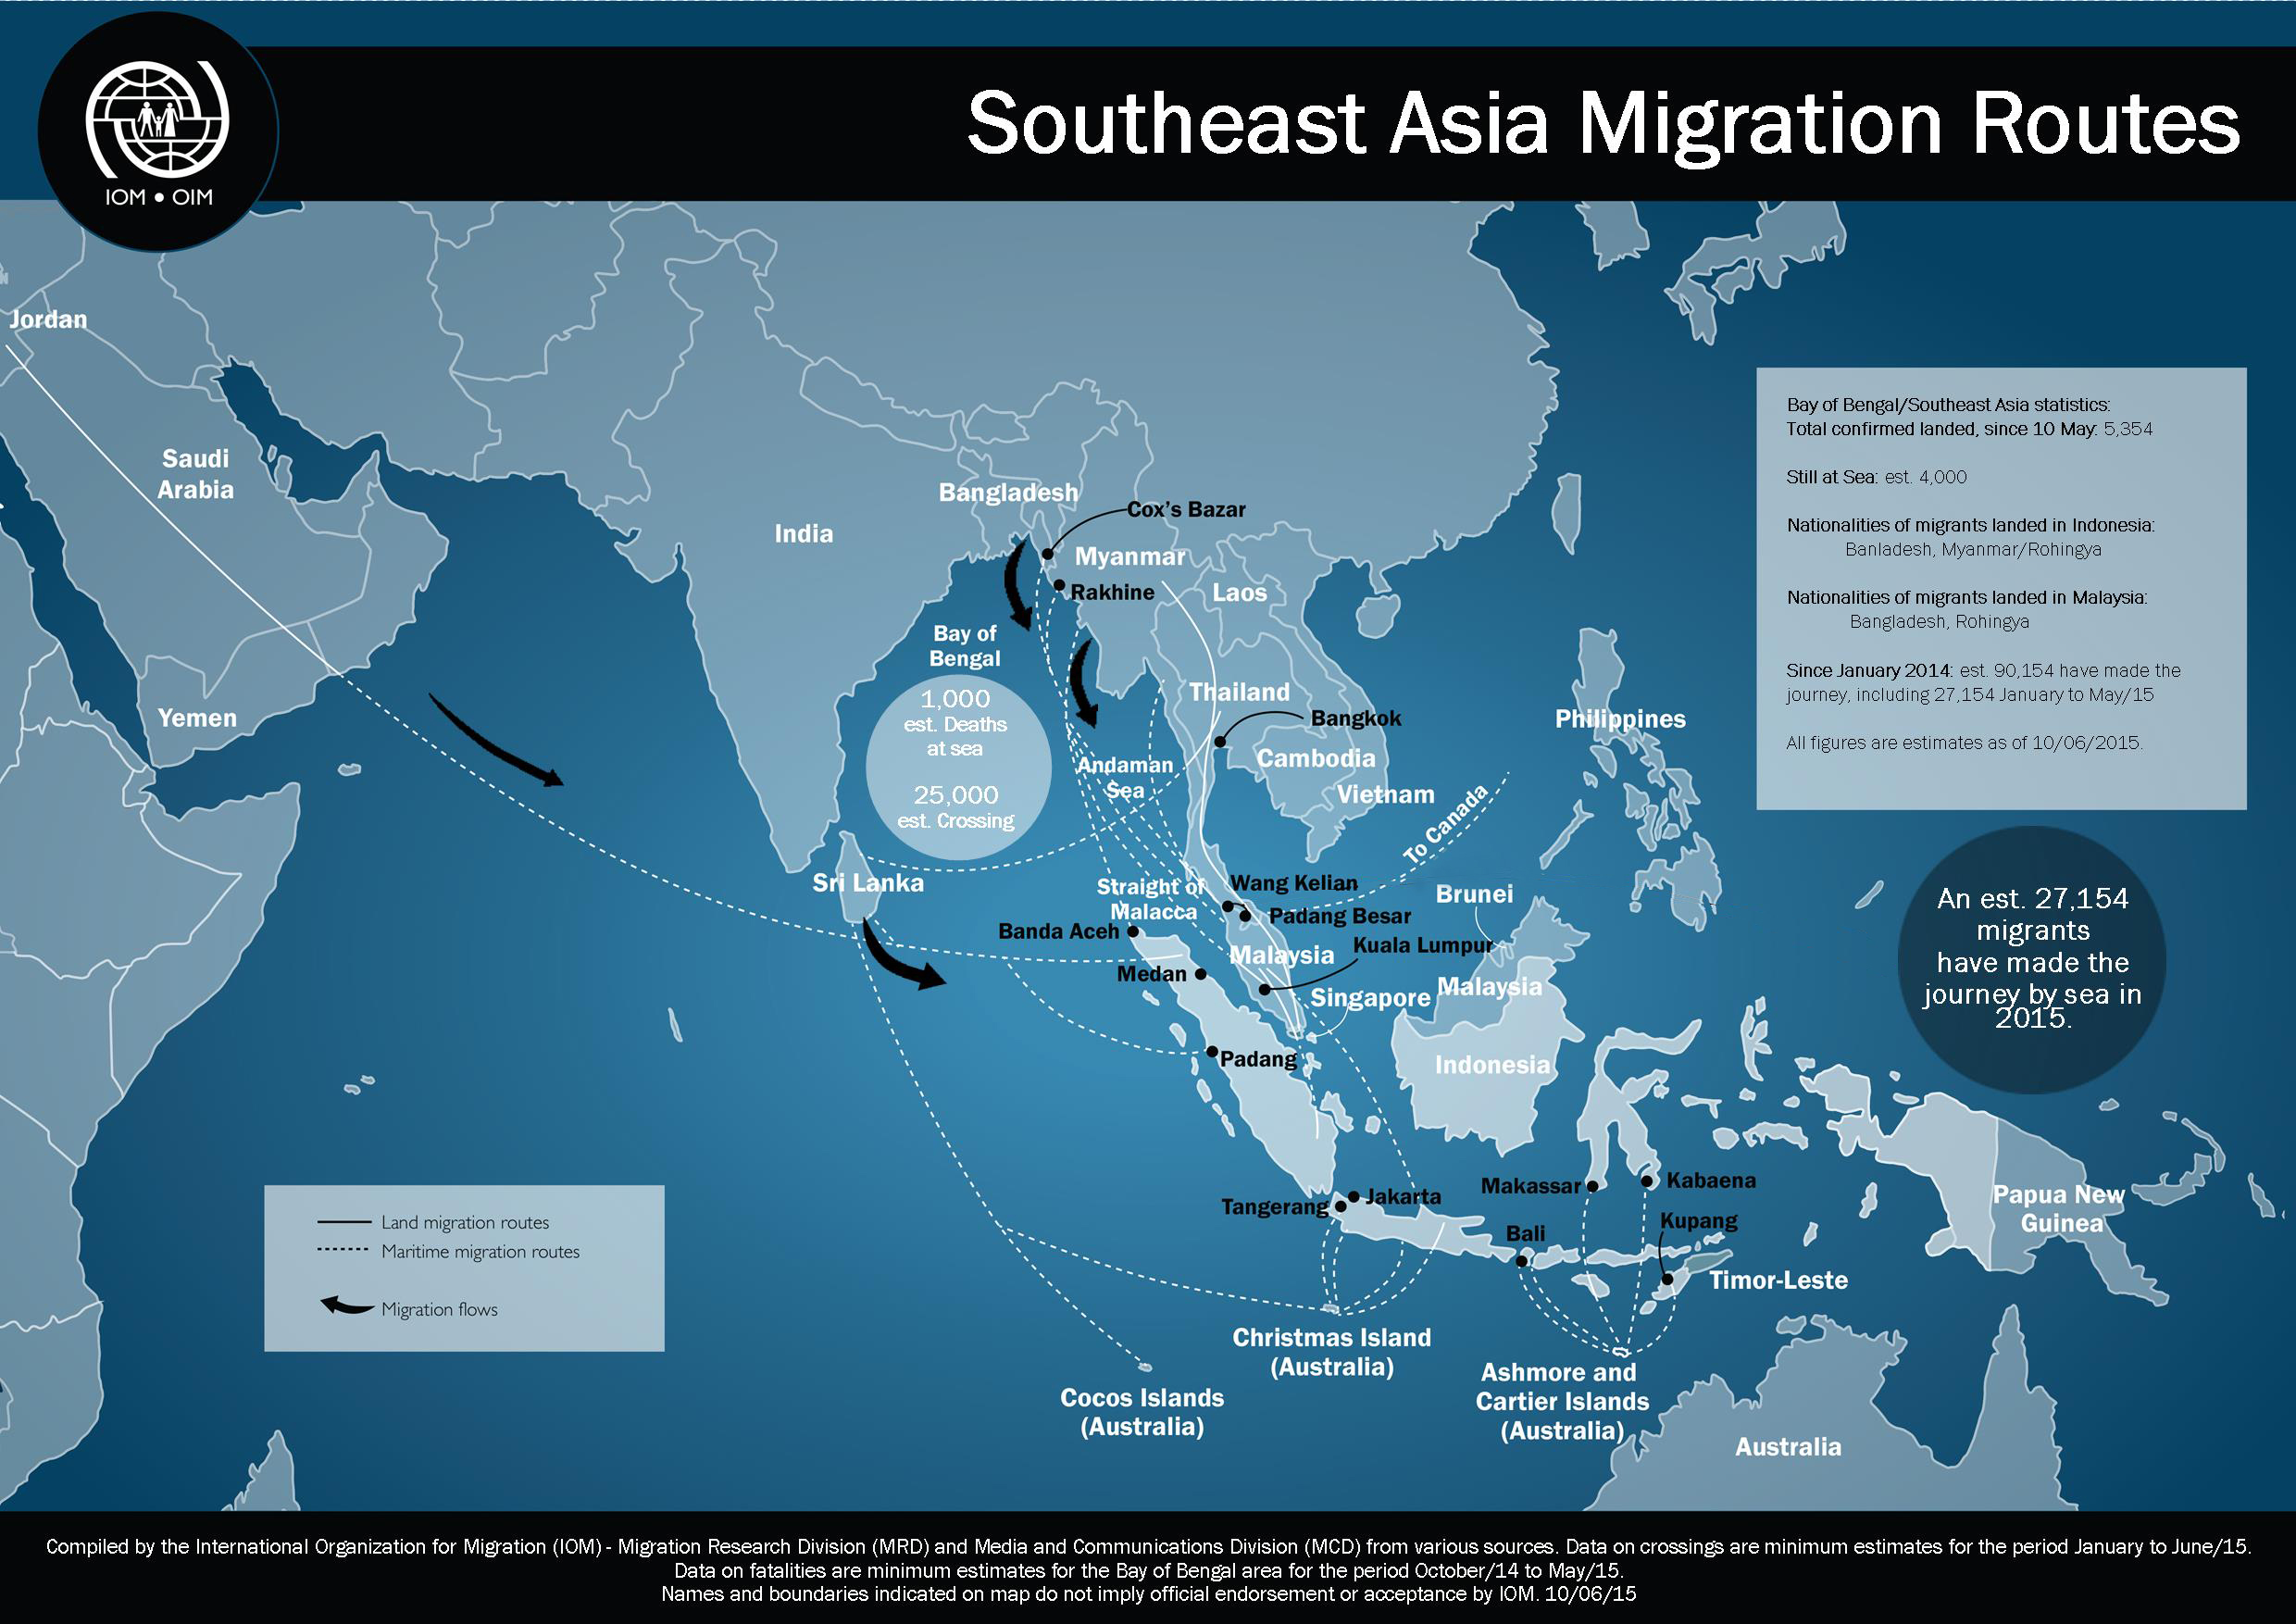 south east asian crisis Just as it took a deadly shipwreck to finally put the spotlight on the dire migrant crisis in the mediterranean, it's taken the stranding of some 6,000 migrants — and perhaps several times that number — at sea in southeast asia to raise the alarm about another migrant crisis stemming from what.